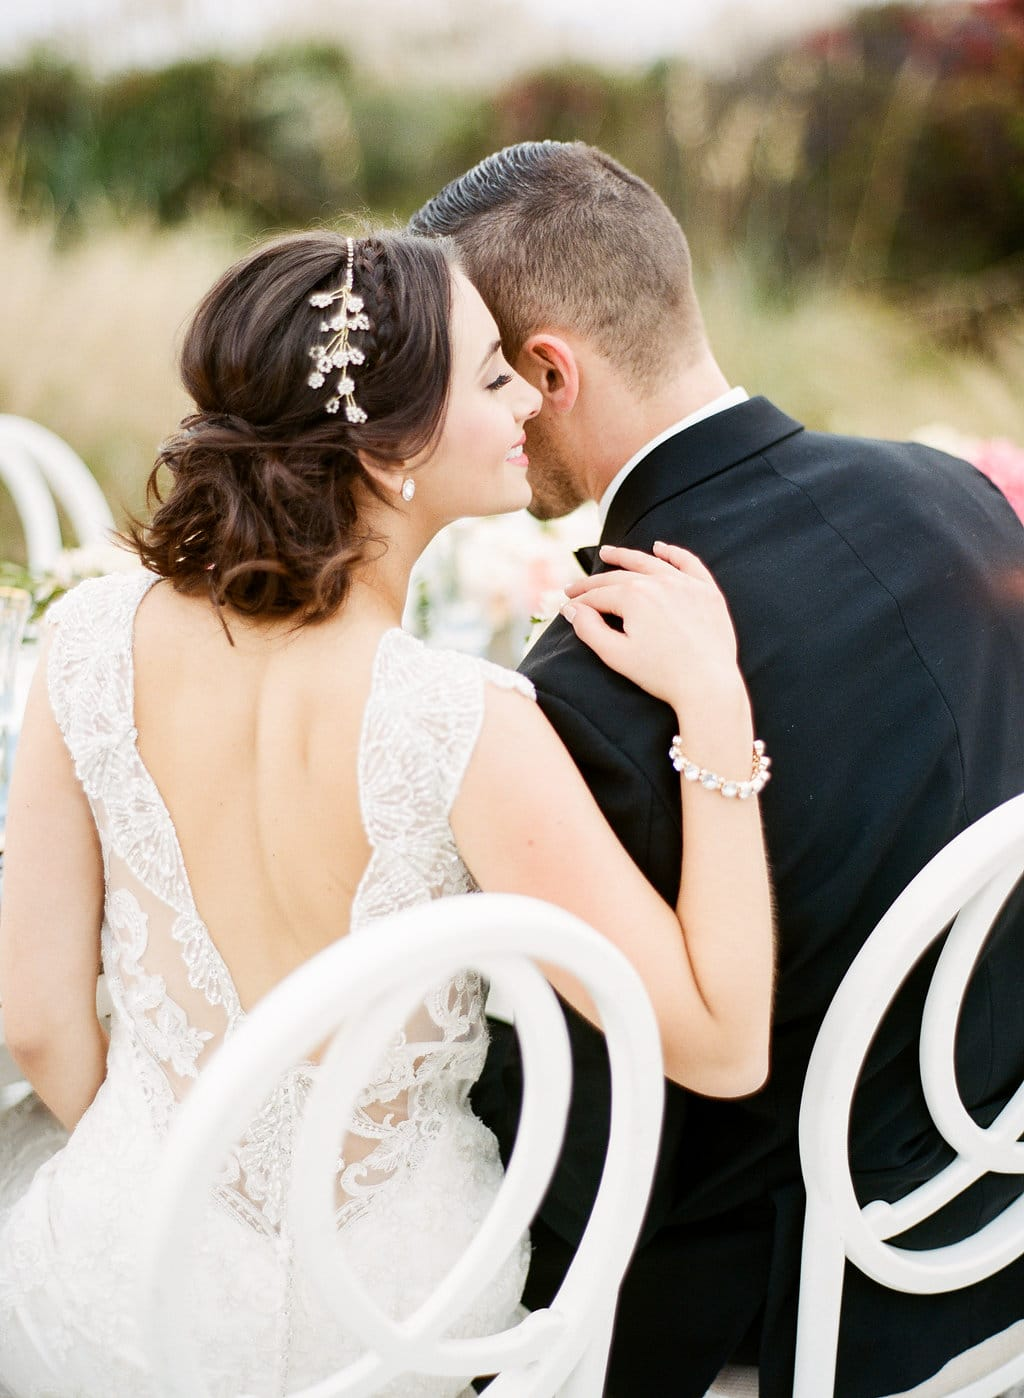 Cute Girl's Hairstyles - Half Updo + Lauren Jonas Styled Shoot featuring Elison Wedding Dress by Maggie Sottero